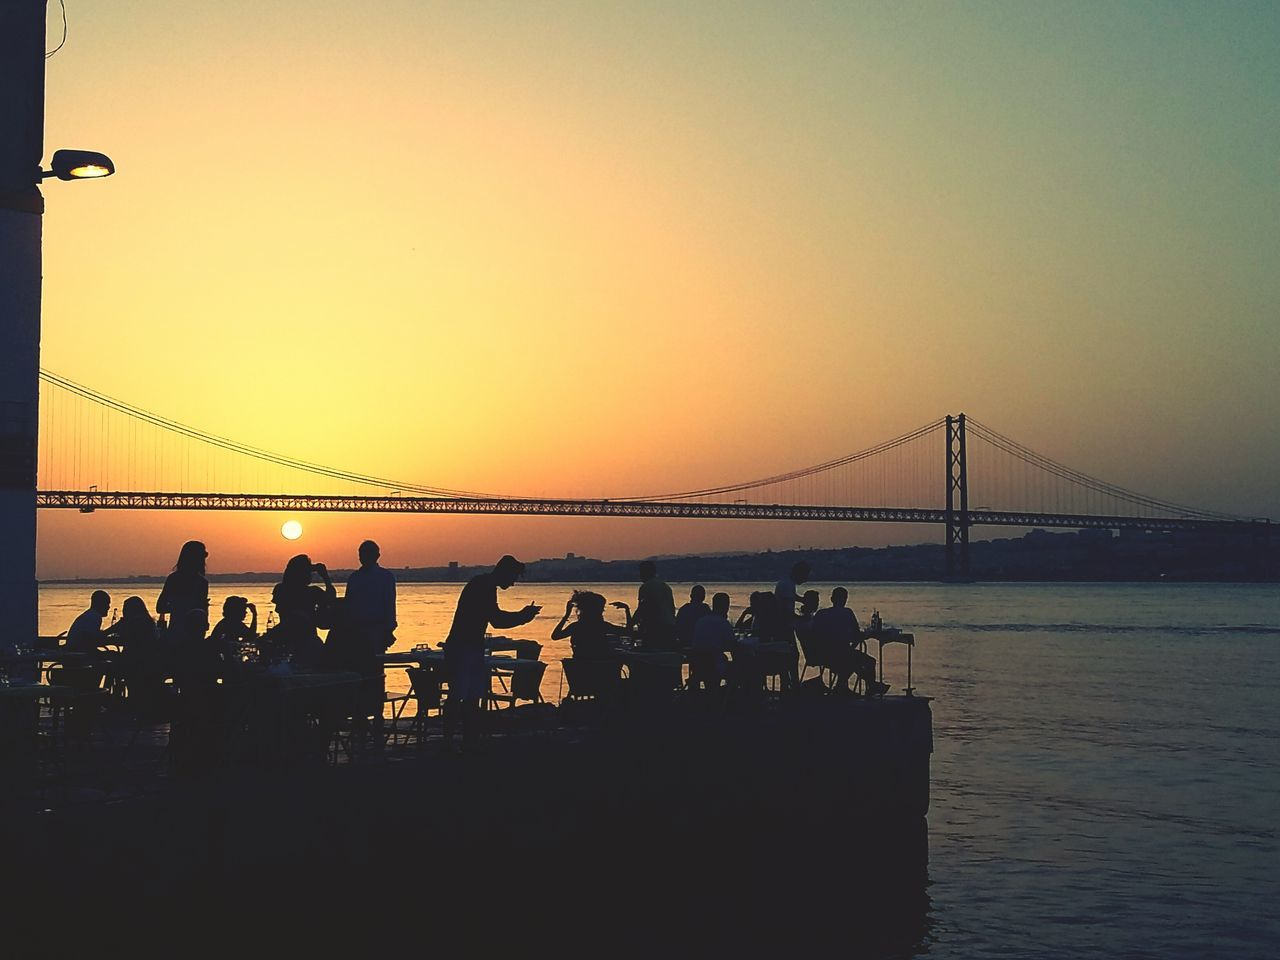 sunset, silhouette, water, sea, bridge - man made structure, suspension bridge, connection, nature, sky, clear sky, bridge, built structure, lifestyles, architecture, men, beauty in nature, outdoors, real people, large group of people, beach, scenics, travel destinations, horizon over water, day, people